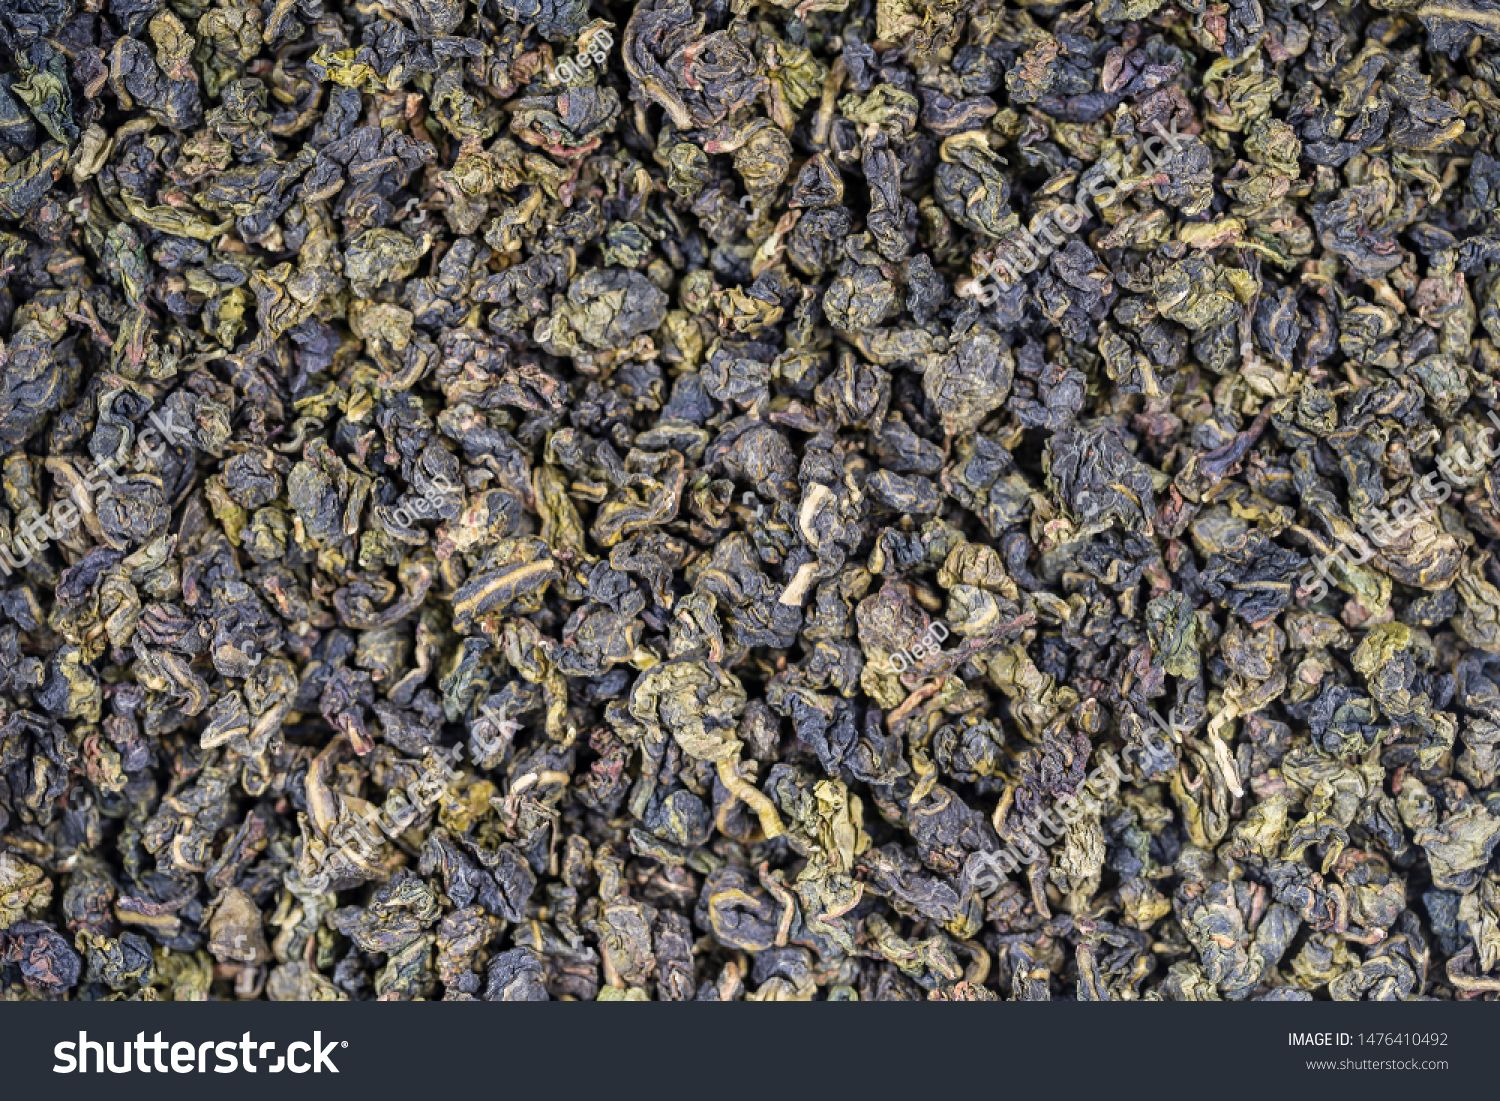 Green tea leaves background Oolong tea Abstract food textures Close up top view